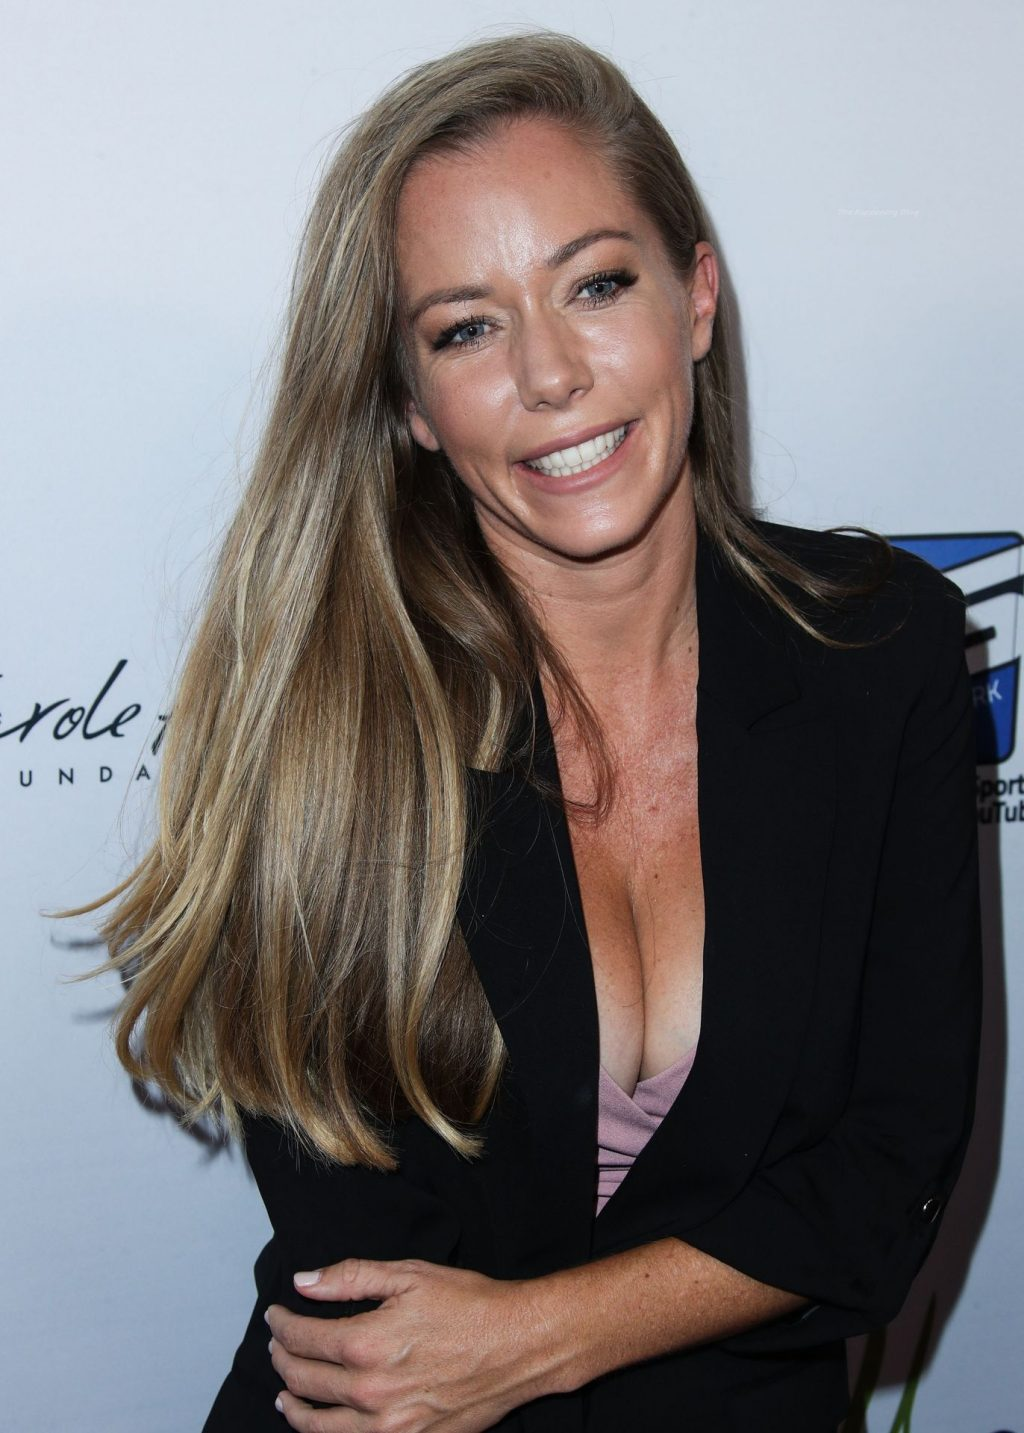 Kendra Wilkinson Shows Off Her Cleavage at the 21st Annual Harold and Carole Pump Foundation Gala (26 Photos)